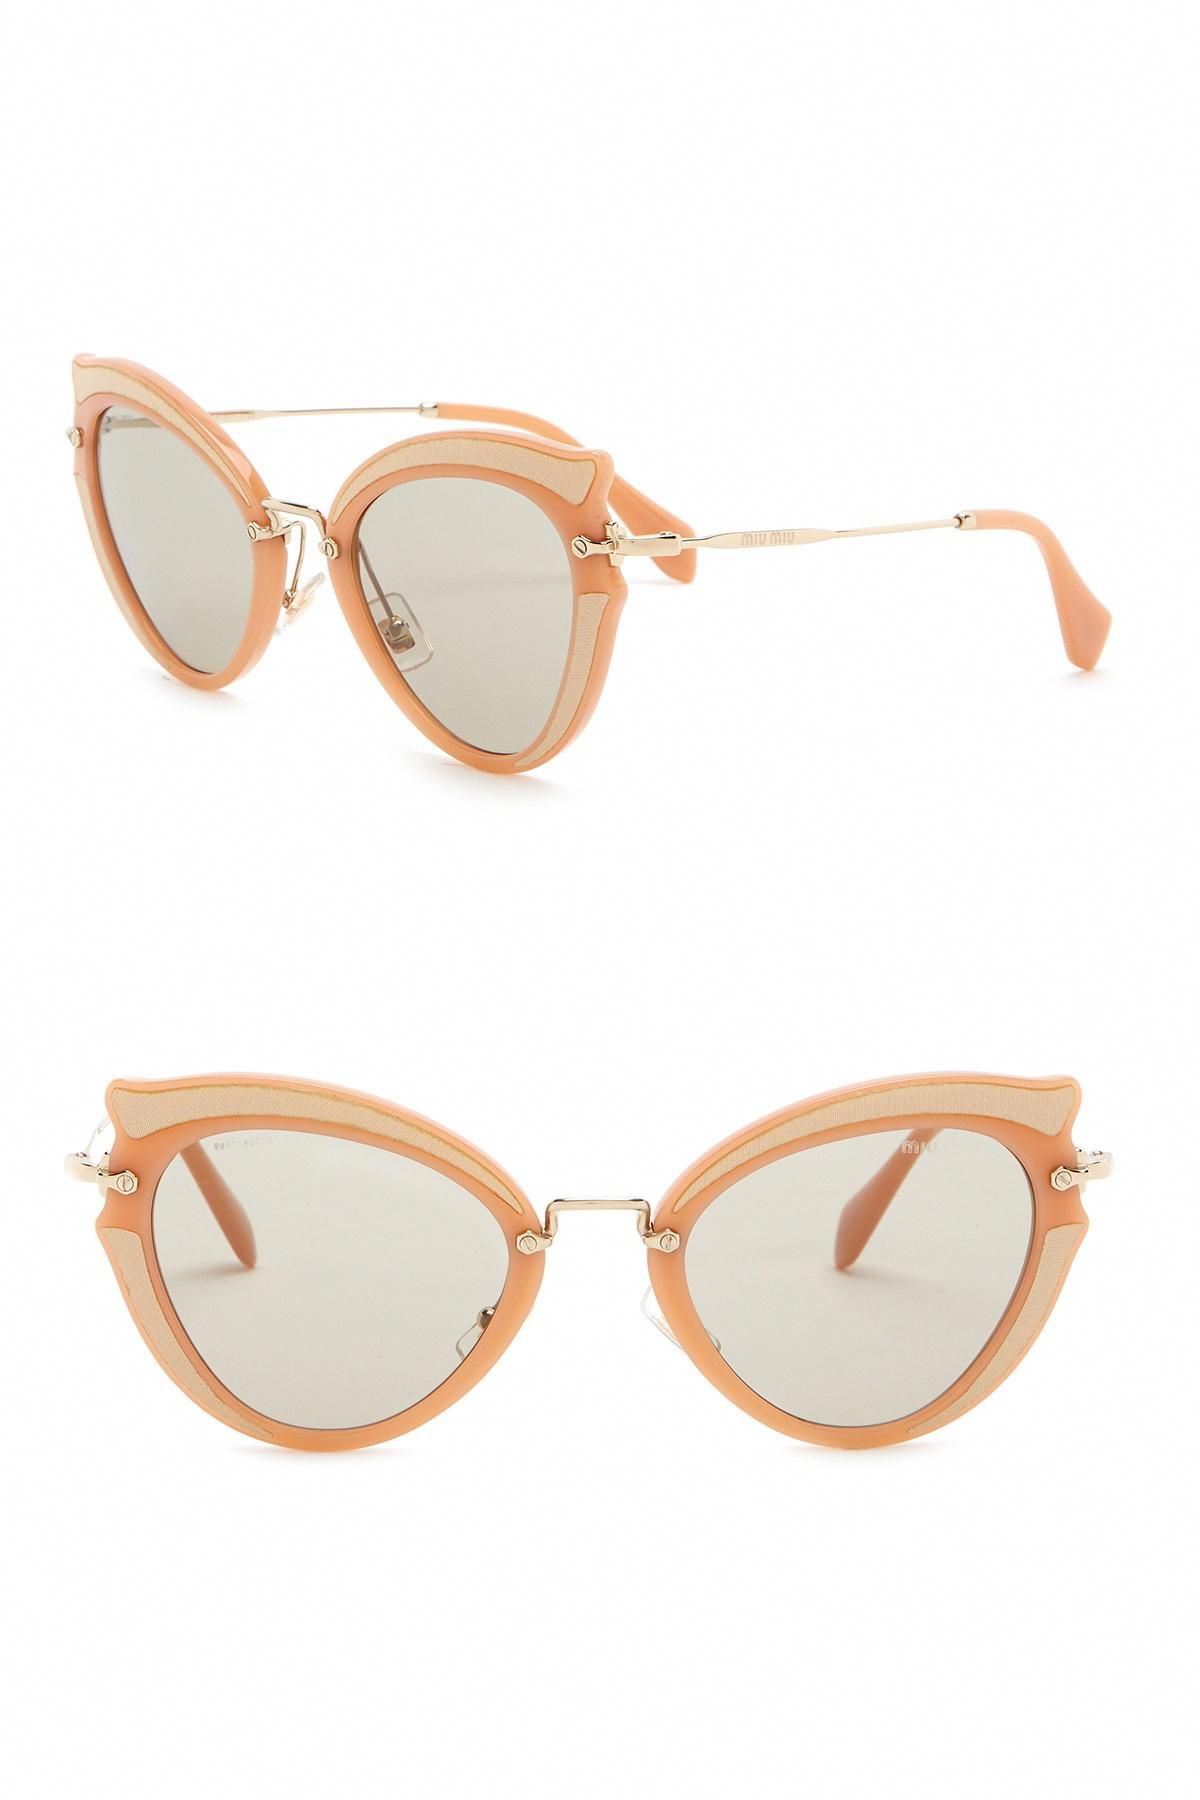 a5093985511 MIU MIU - Women s Butterfly 52mm Acetate Frame Sunglasses is now 79% off. Free  Shipping on orders over  100.  MiuMiu